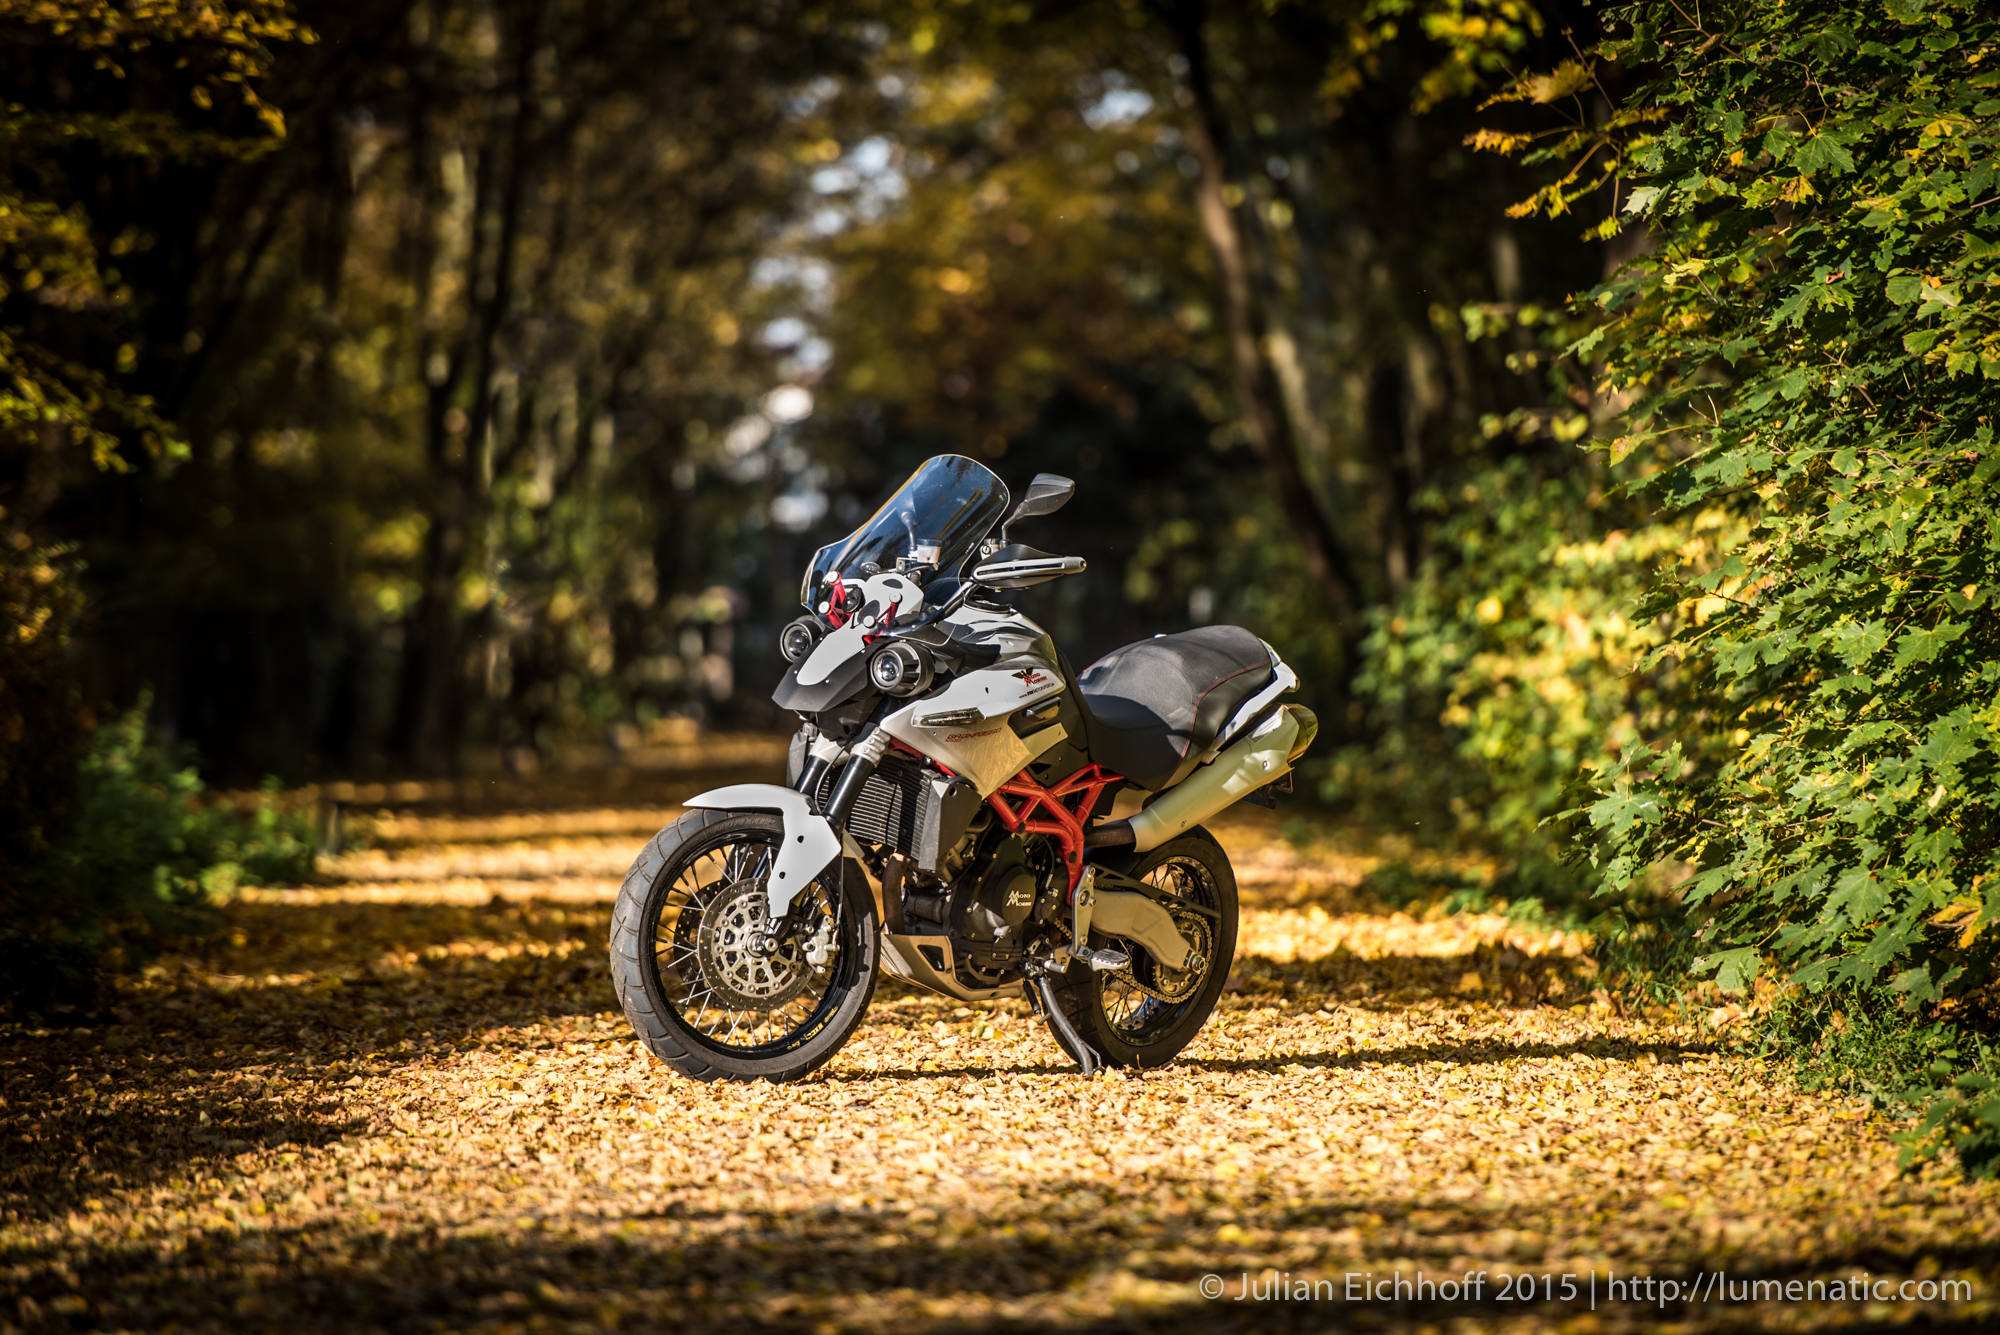 Bike in autumn foliage, part 1: Daytime